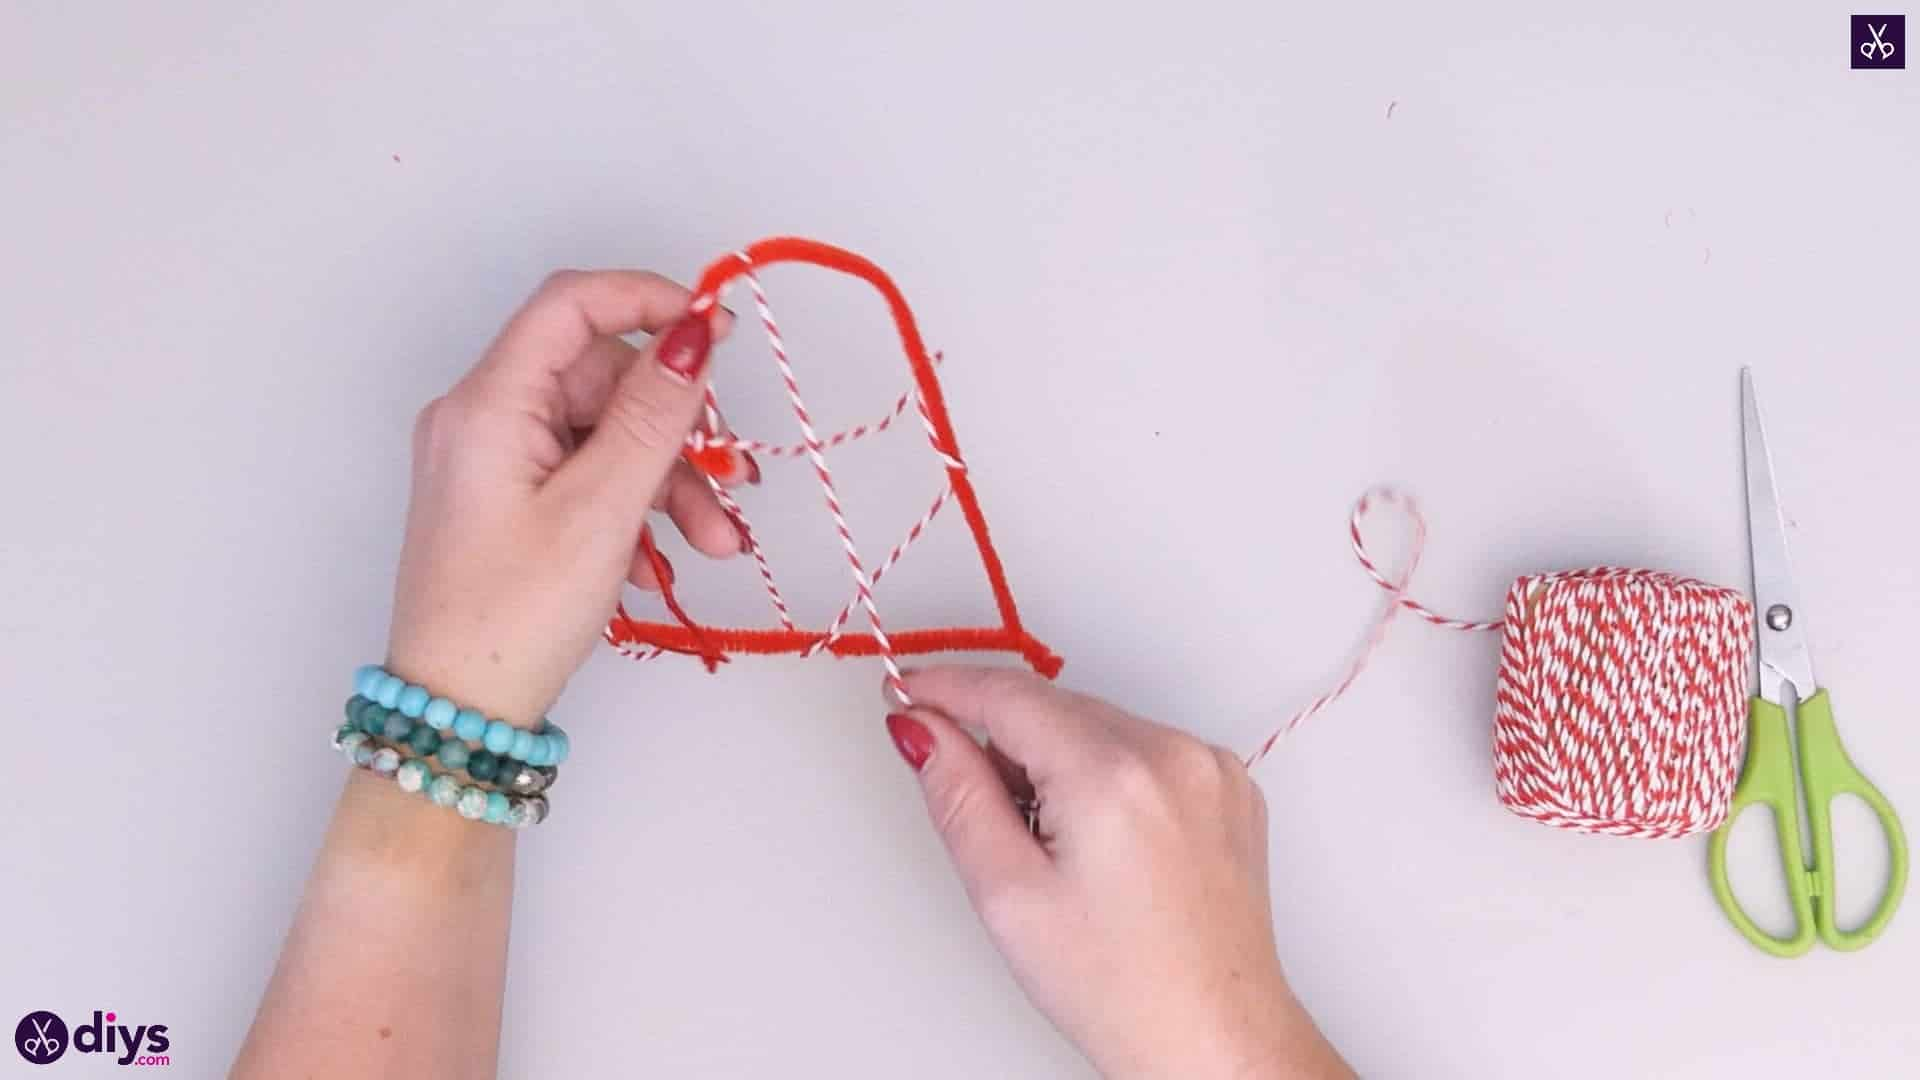 Diy hanging heart wall decor step 4c